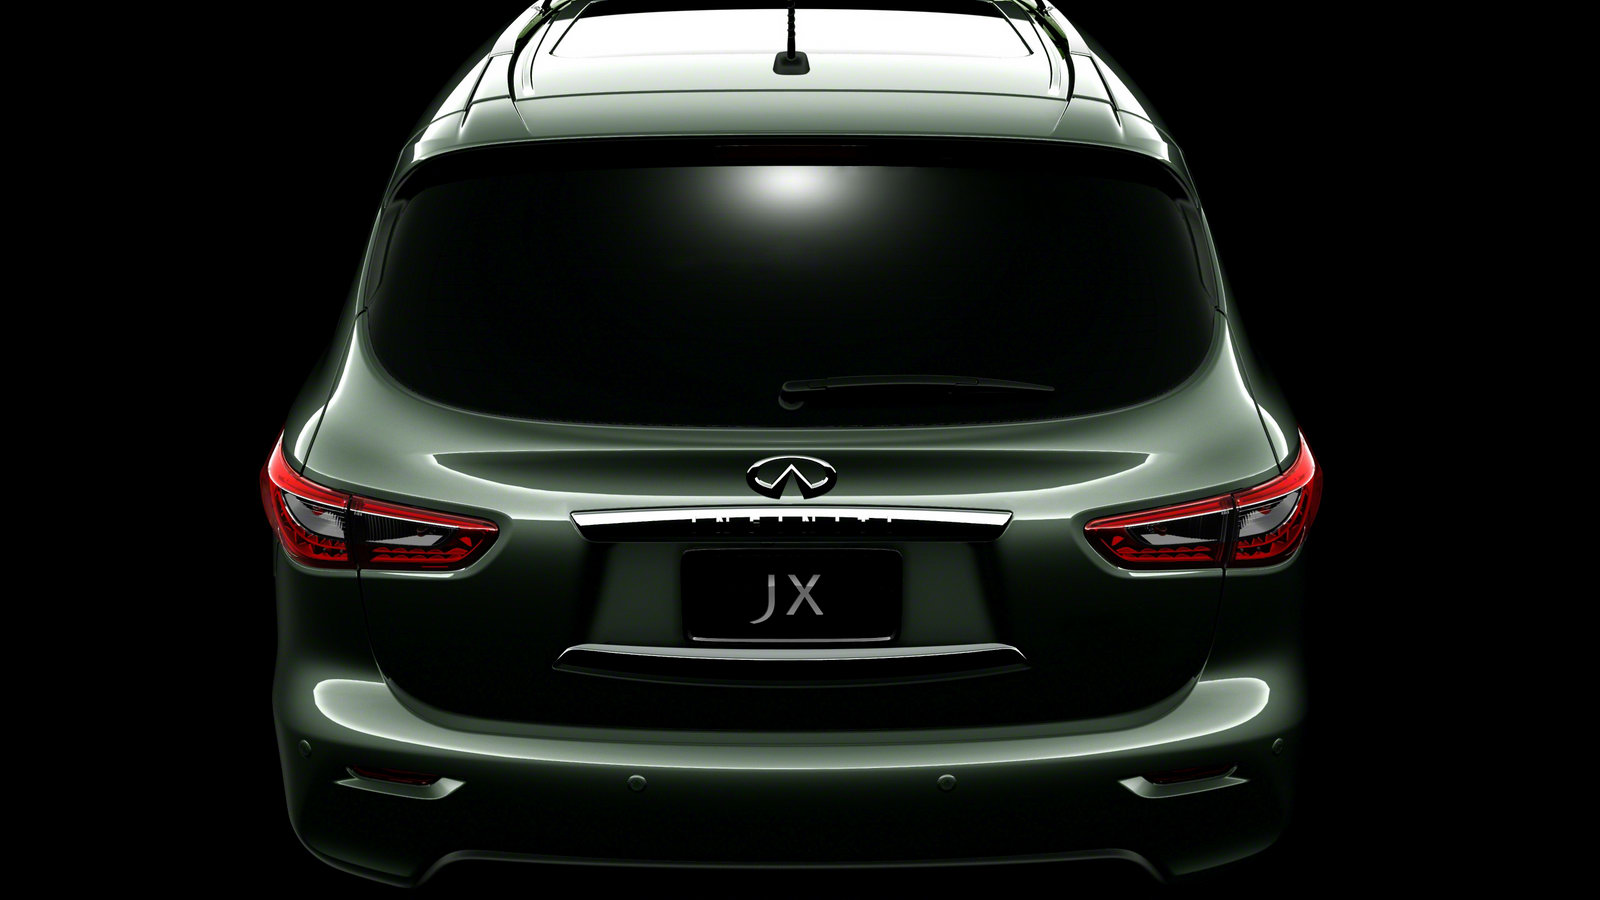 2013 Infiniti JX Crossover 3 Infiniti releases yet another shot of 2013 JX Crossover